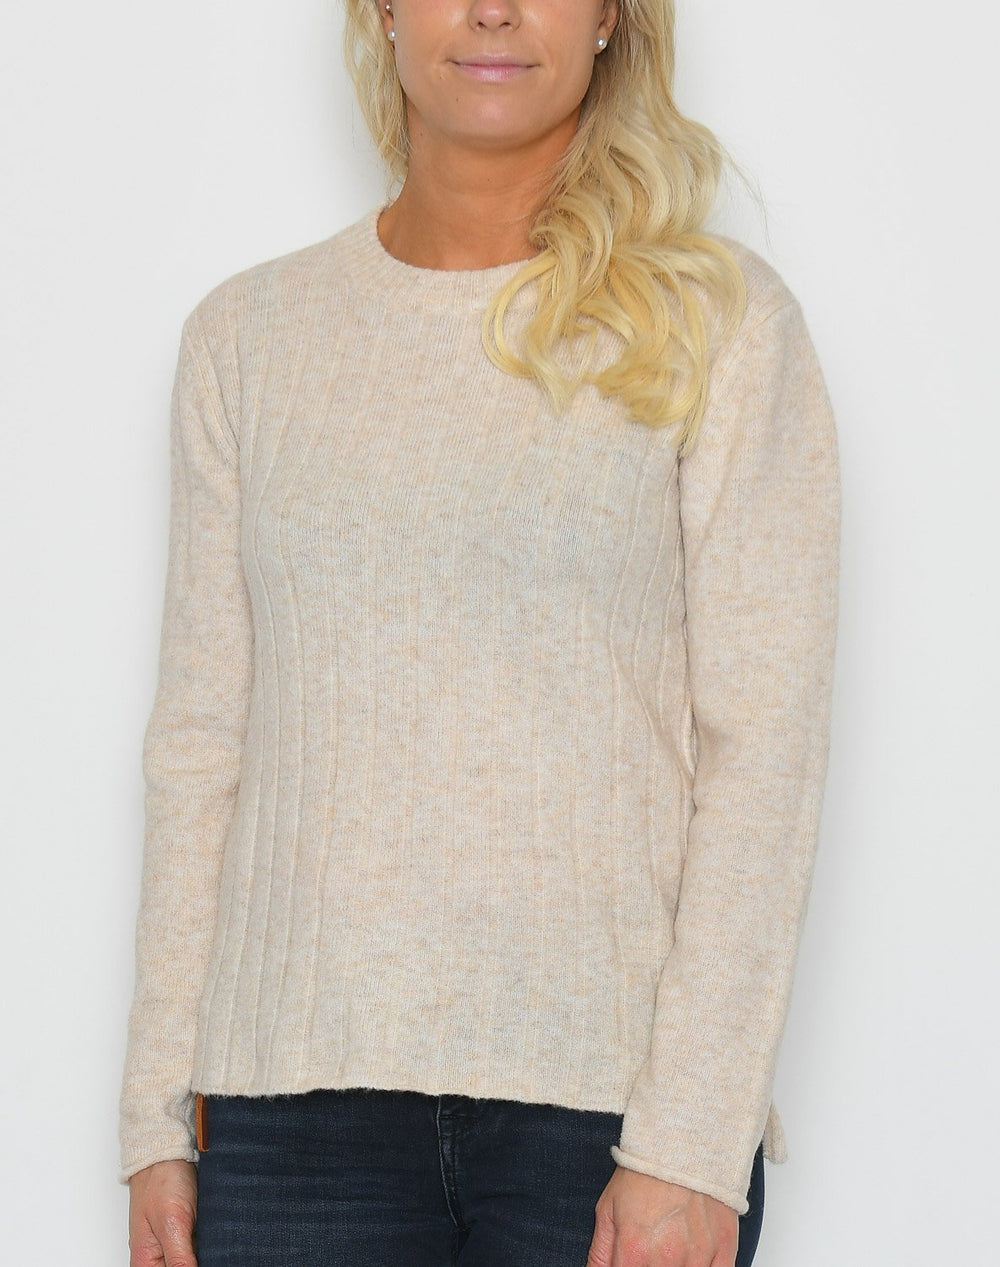 Soft Rebels Claire O-neck knit bleached sand - Online-Mode